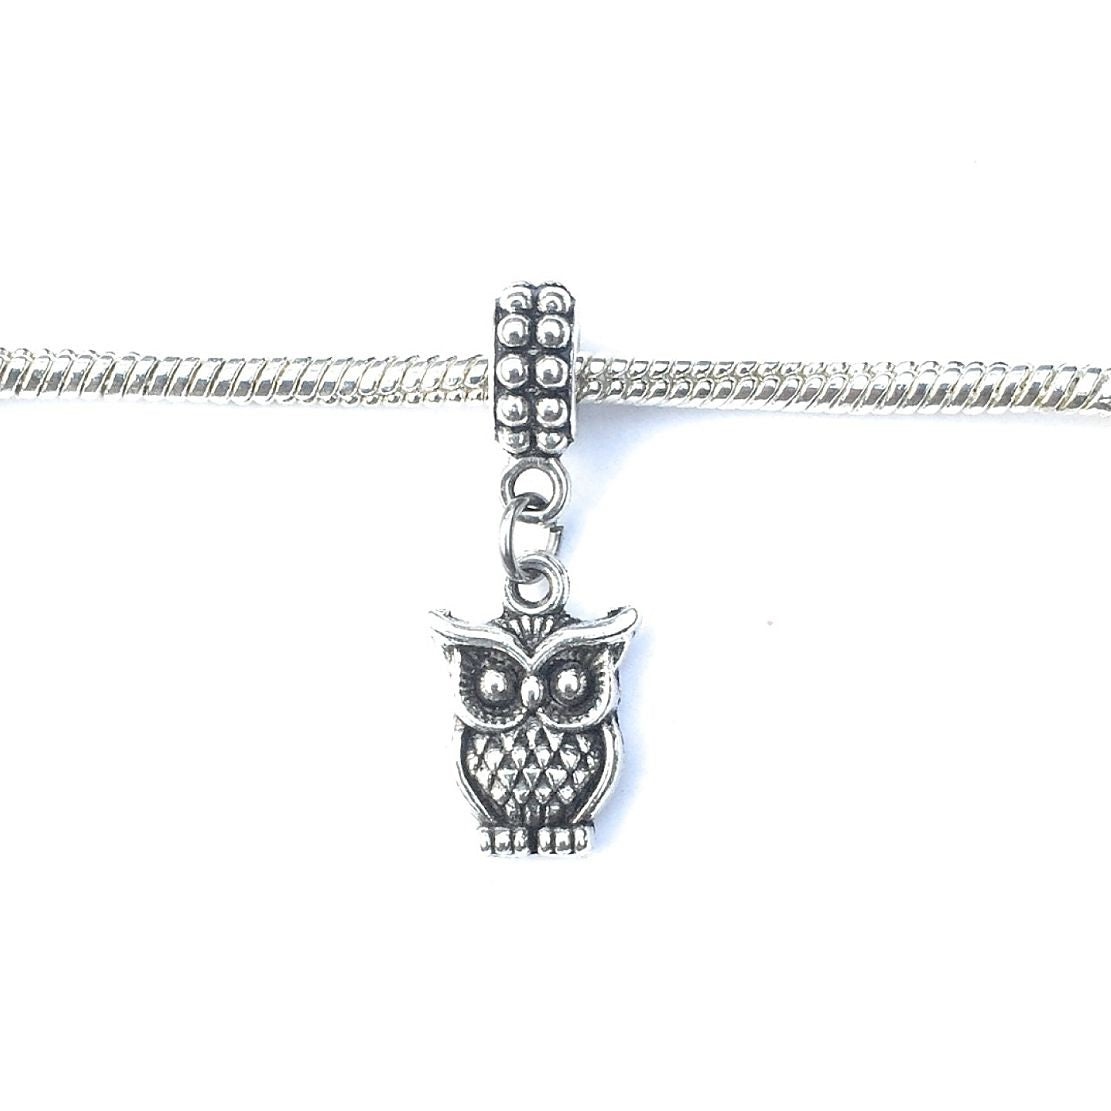 Handcrafted Silver Owl Charm Bead for Bracelet.